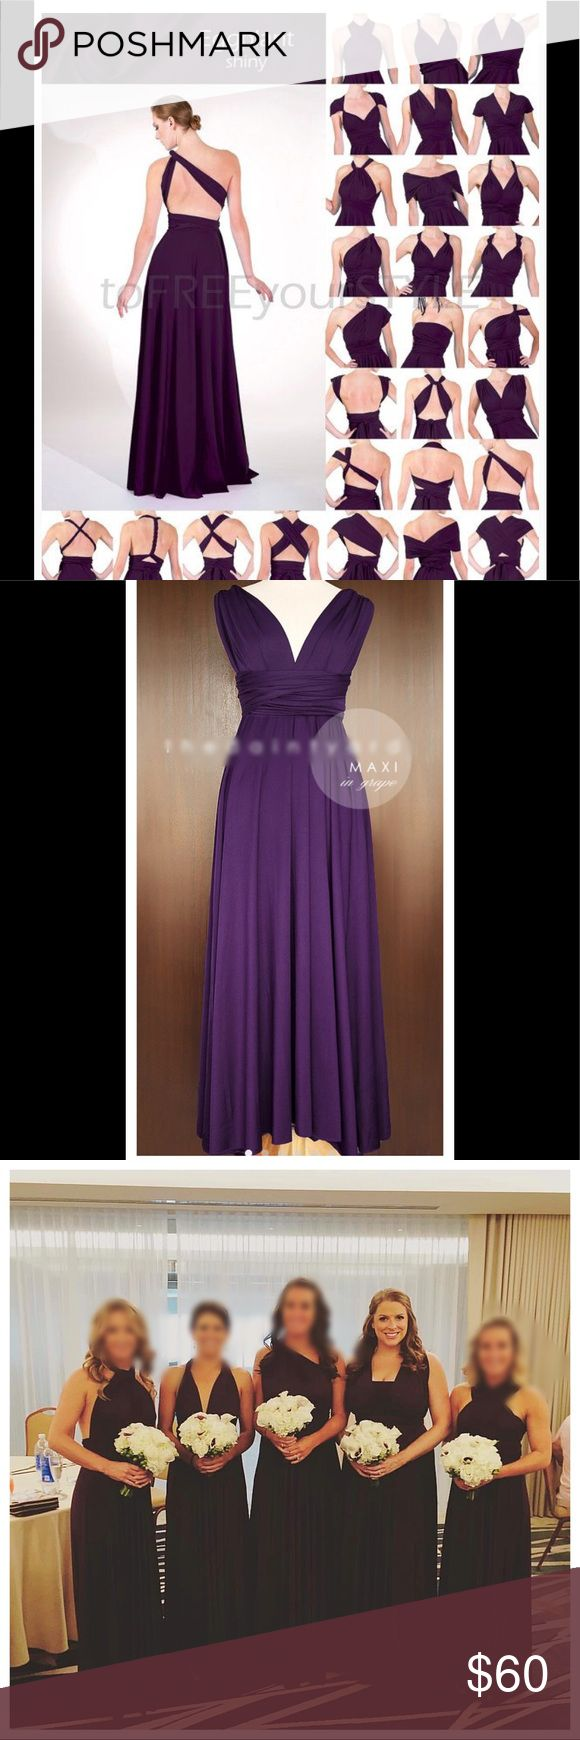 """Purple Infinity Style Maxi Bridesmaid Dress This versatile dress fits many sizes and can be worn in different styles. Perfect for a wedding or other formal event. Comfortable spandex type material with a slight sheen. Comes with complimentary matching bandeau for more coverage! See pictures for styling options! The last two pics are of the actual dress. Worn once.   Elastic waist fits: 35"""" to 48"""". Length measures about 46"""" from waistband to bottom of dress. Would fit a L/XL. The two bands on…"""